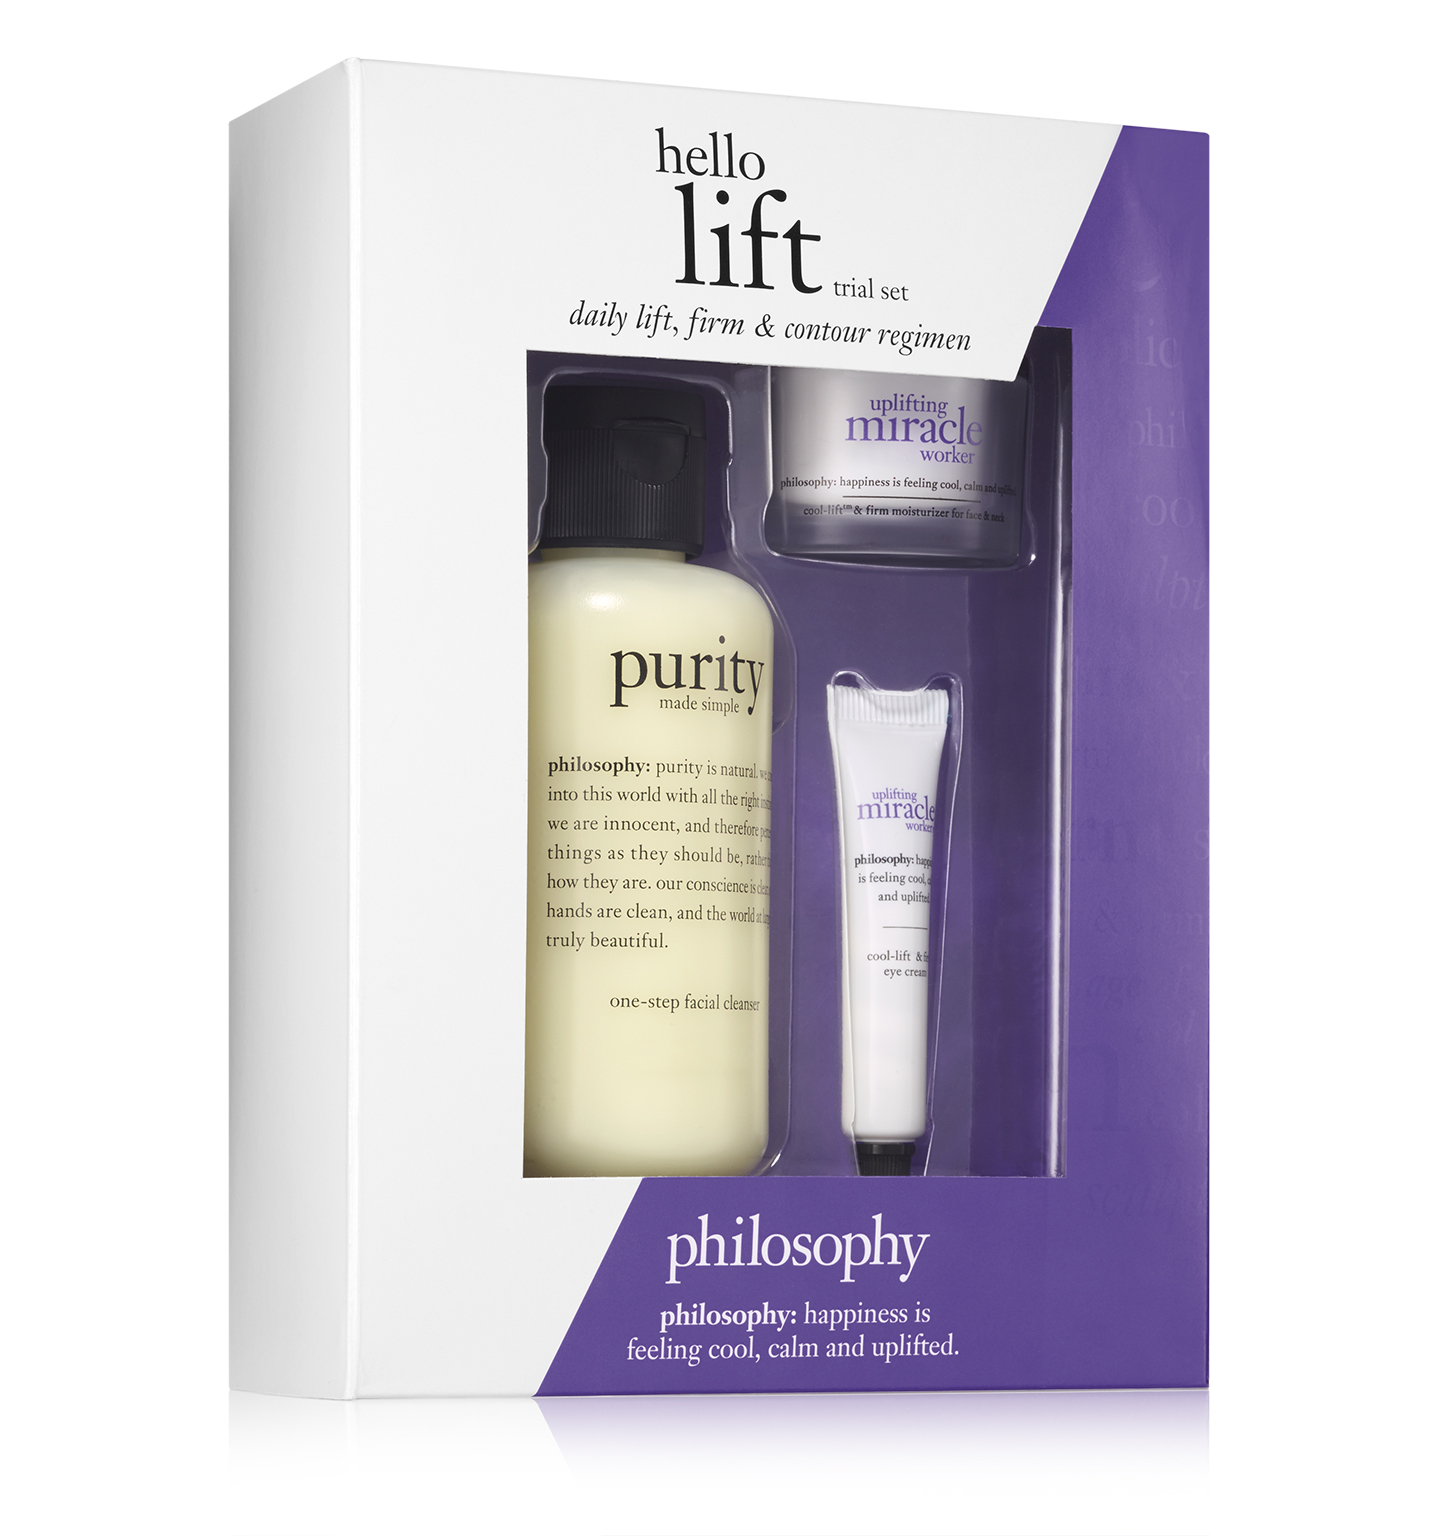 philosophy, hello lift trial set